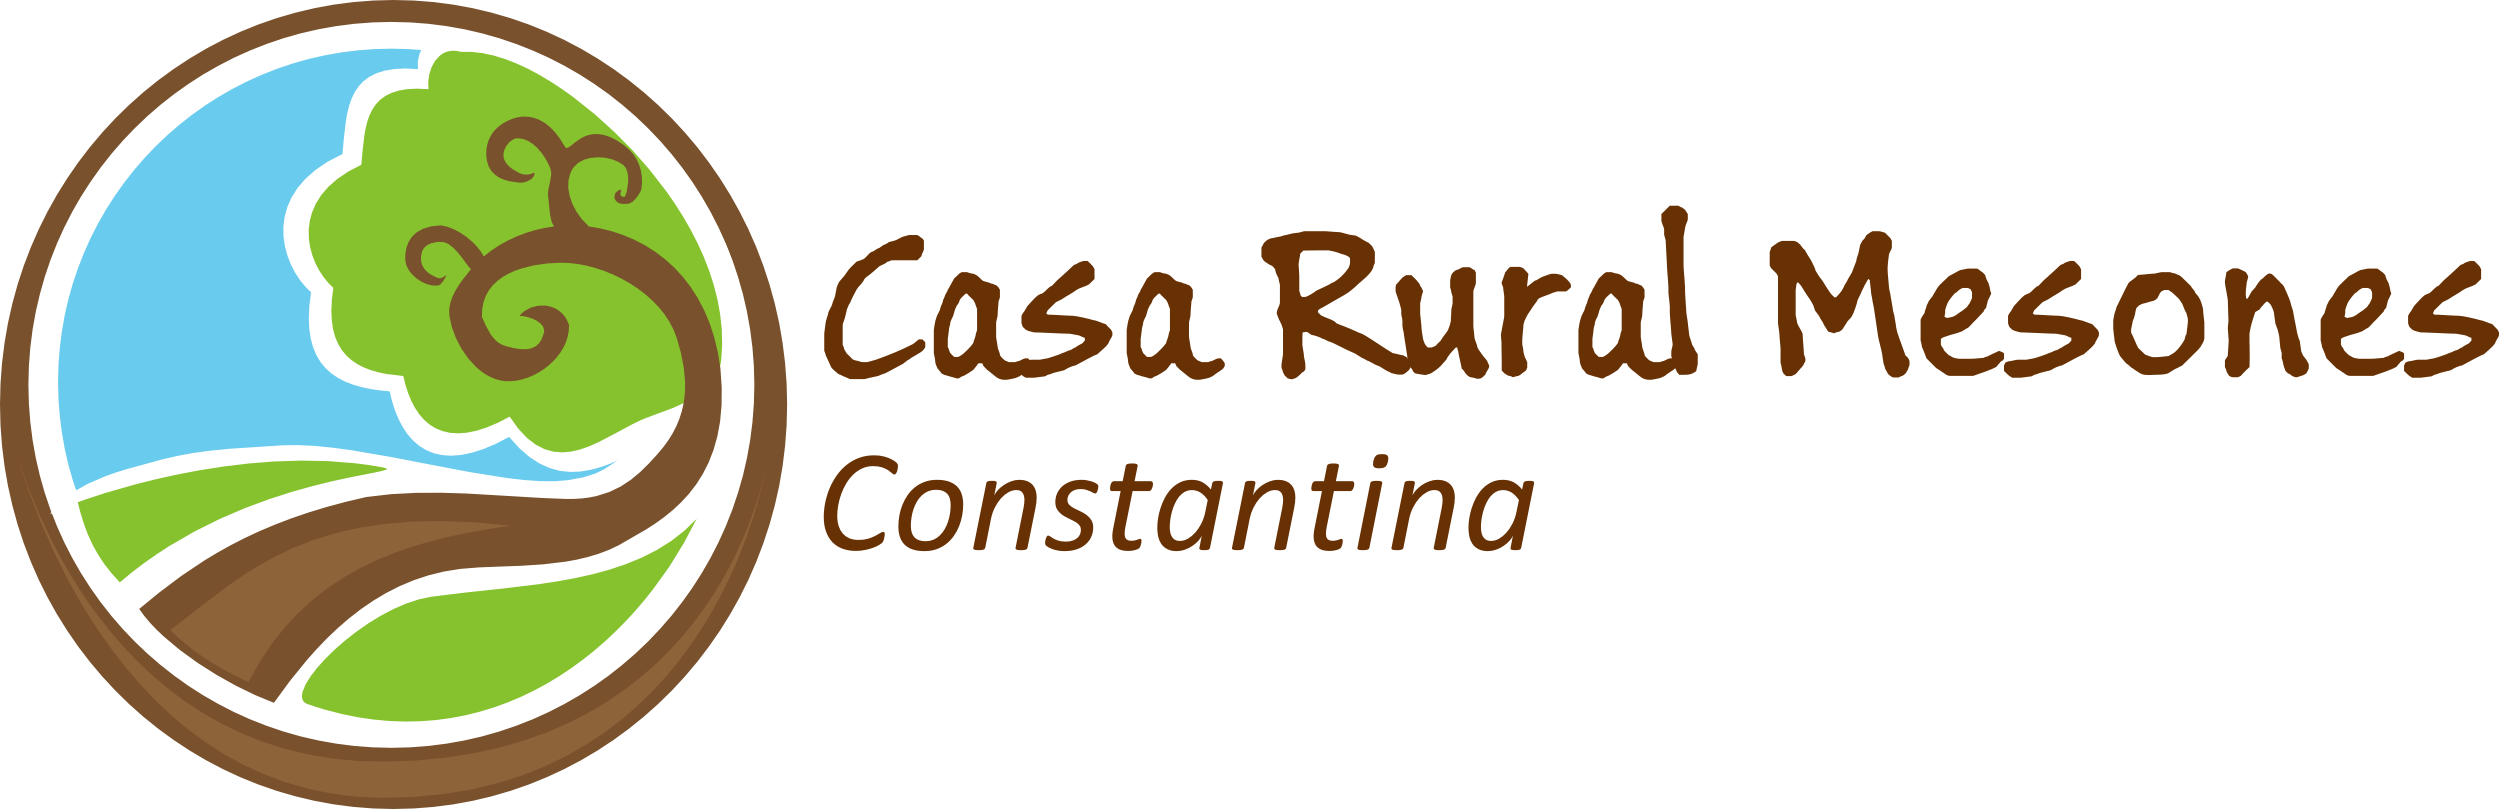 Casa Rural Mesones